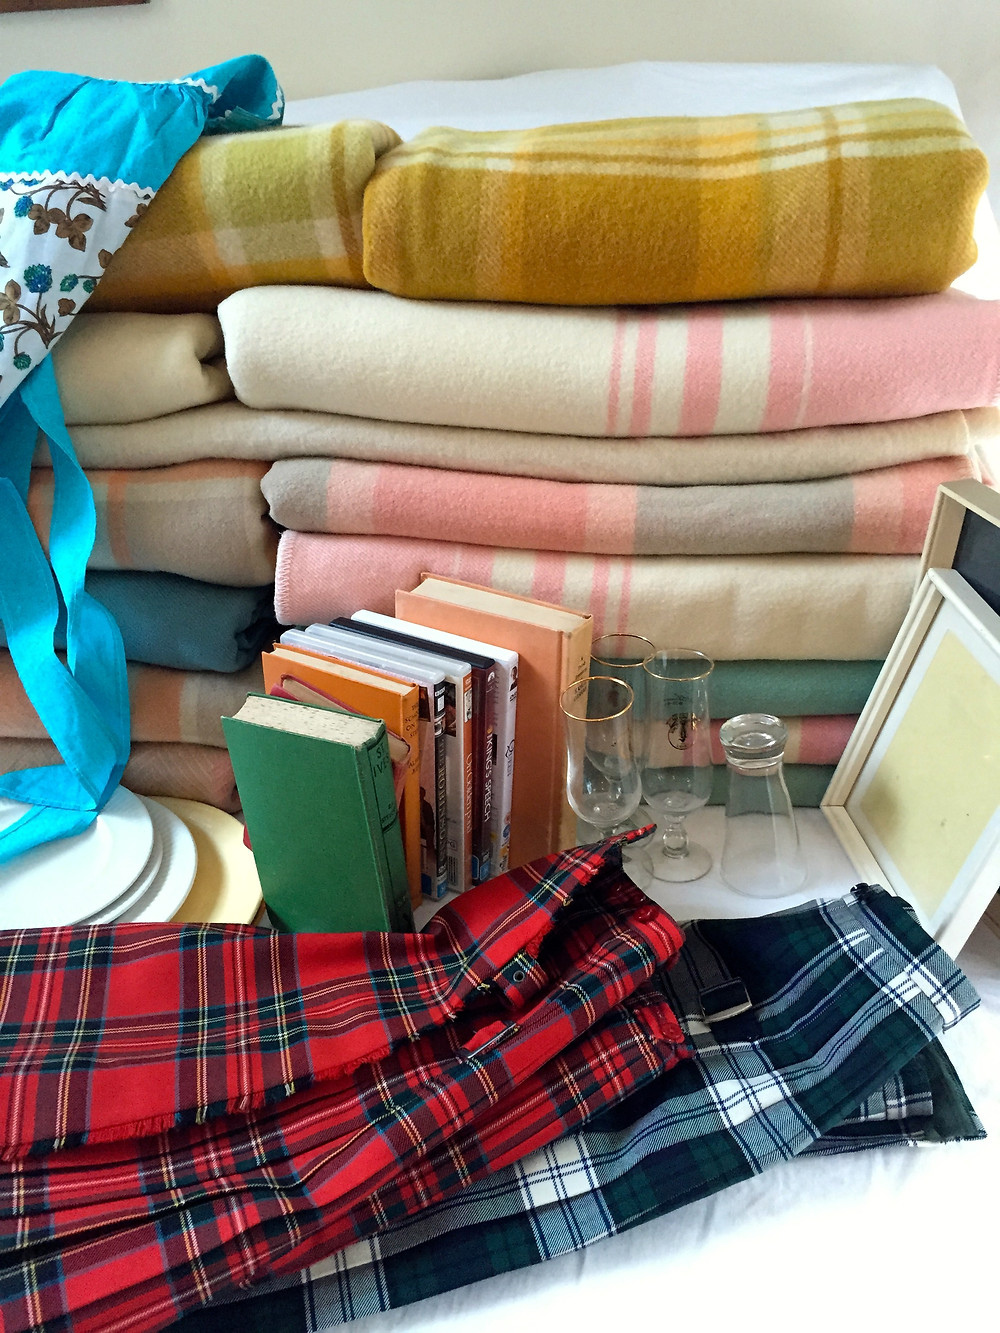 Thank you Bright for 5 Blankets for $5 and 3 lovely elderly ladies with their blanket stories!